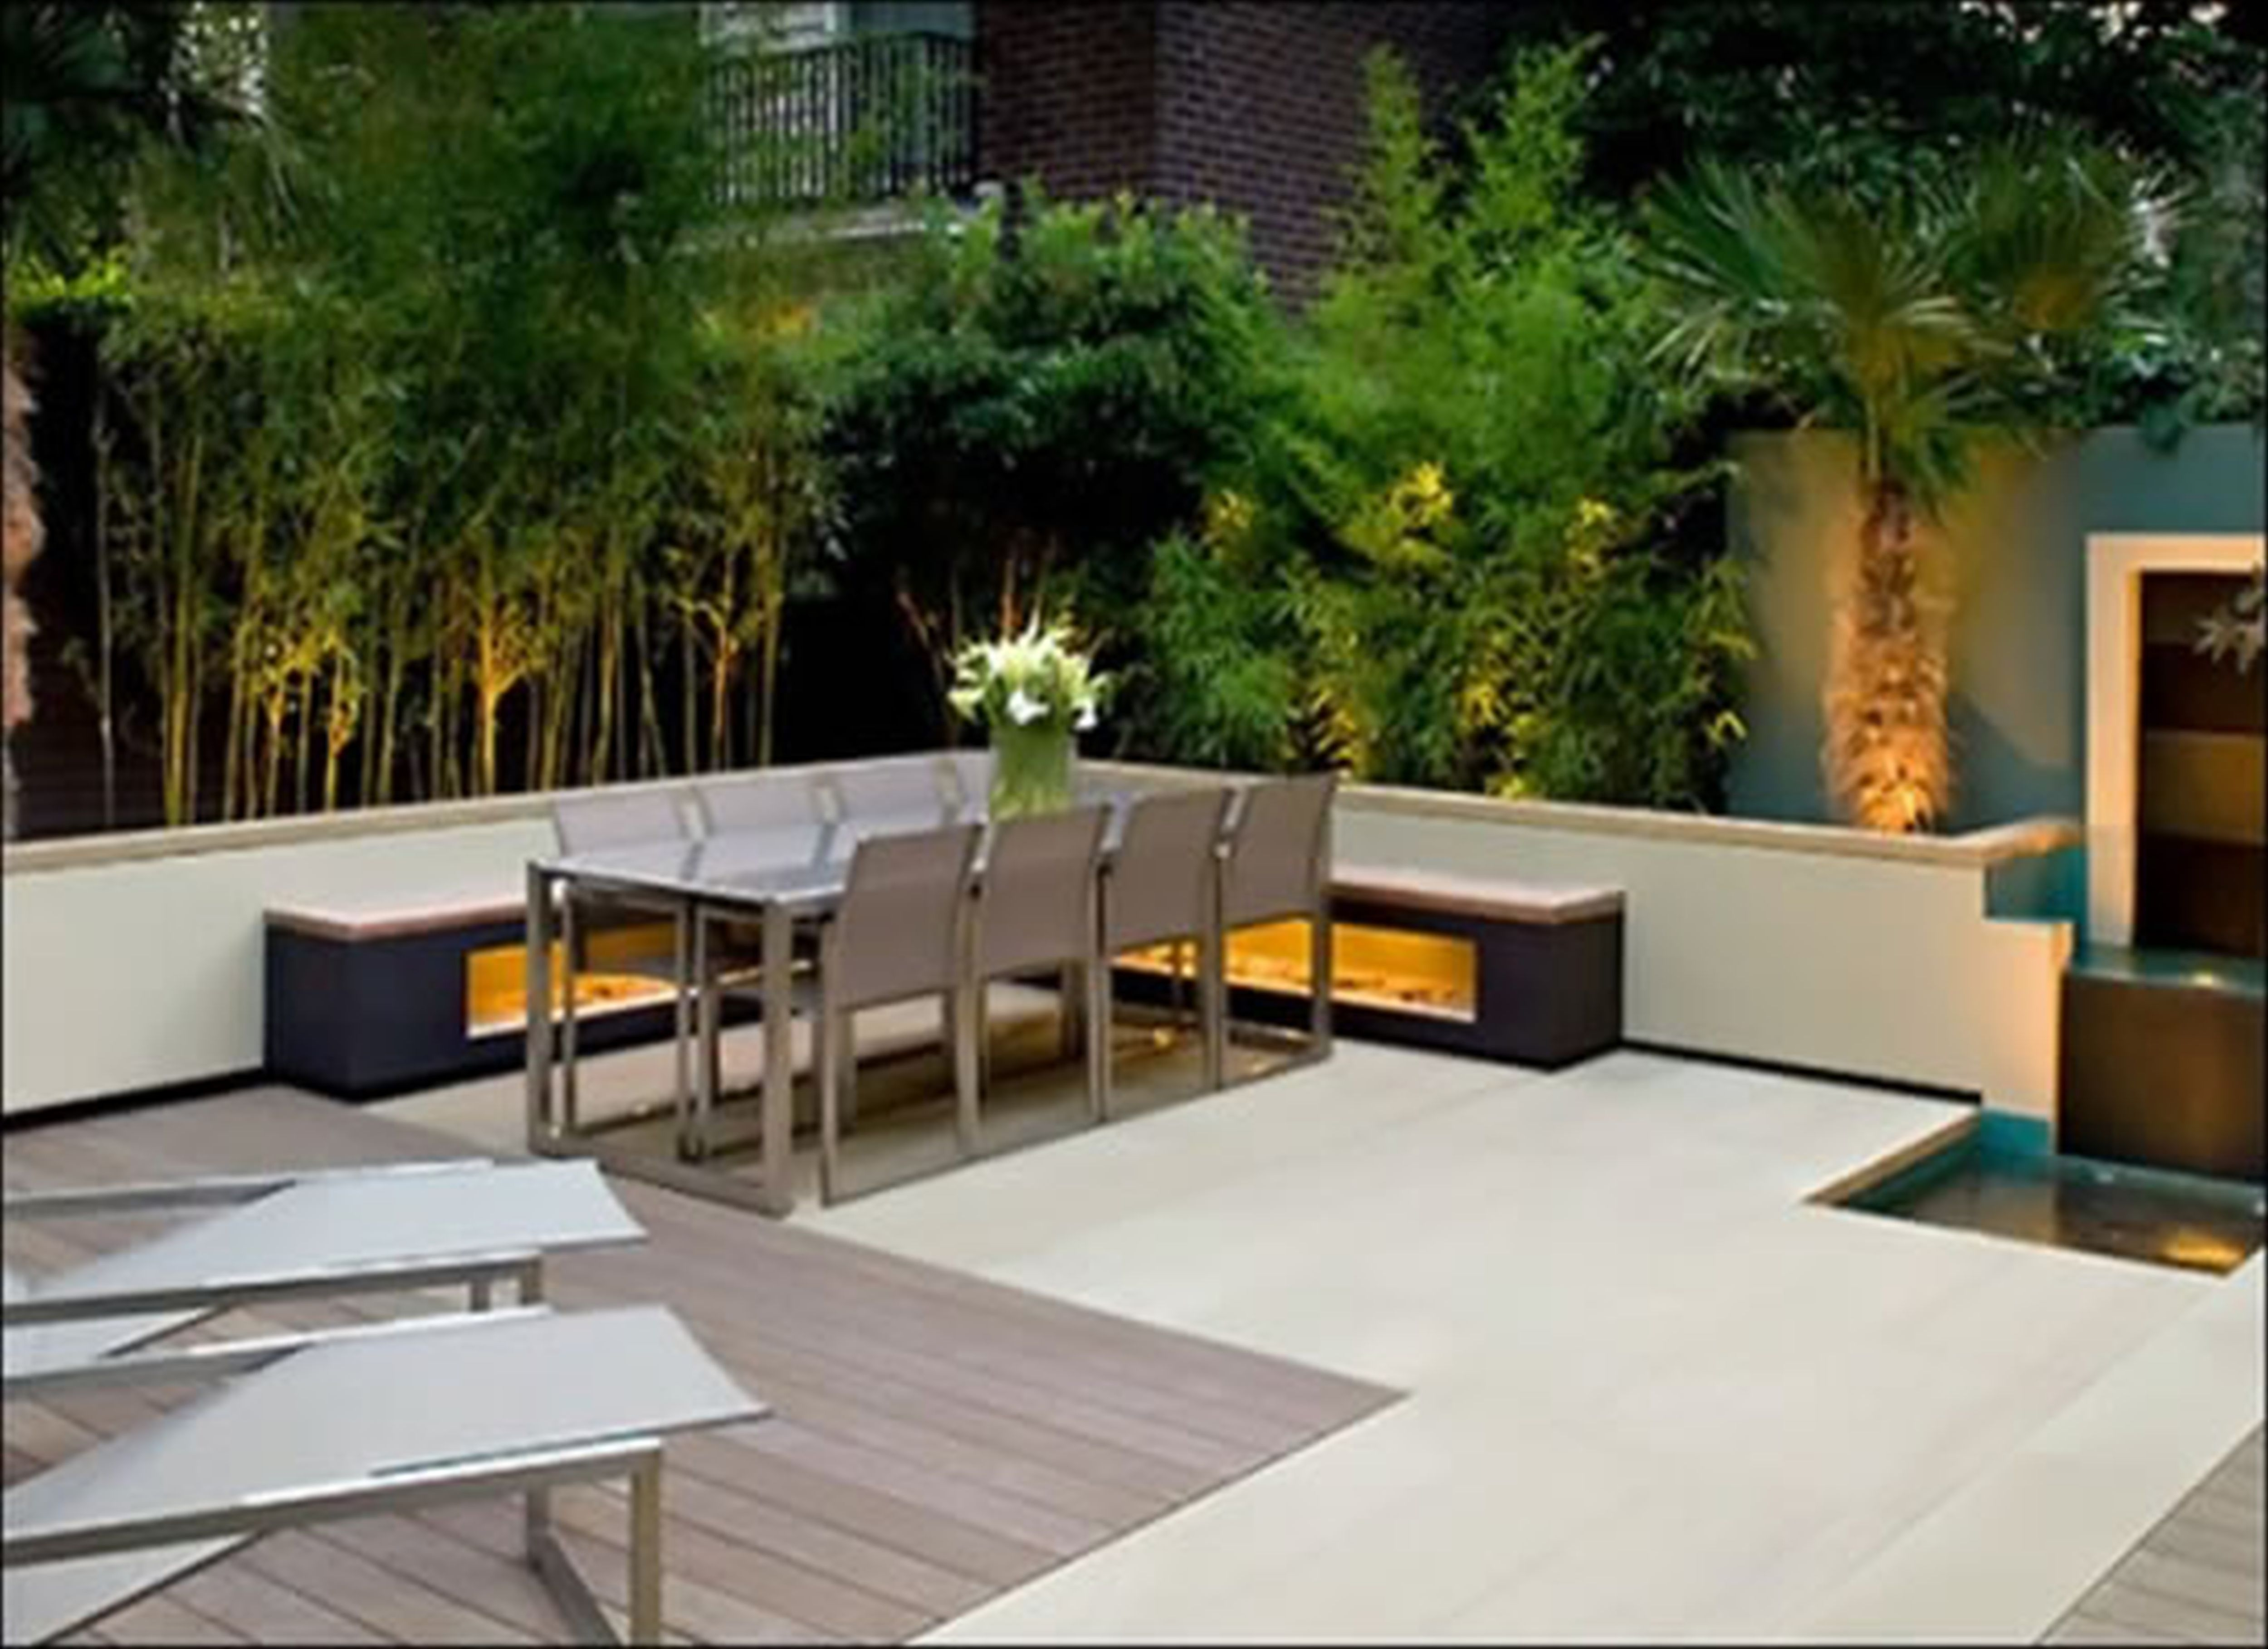 Furniture Lawn Garden Modern Landscaping Ideas For Front Yard From throughout Modern Landscaping Ideas For Backyard